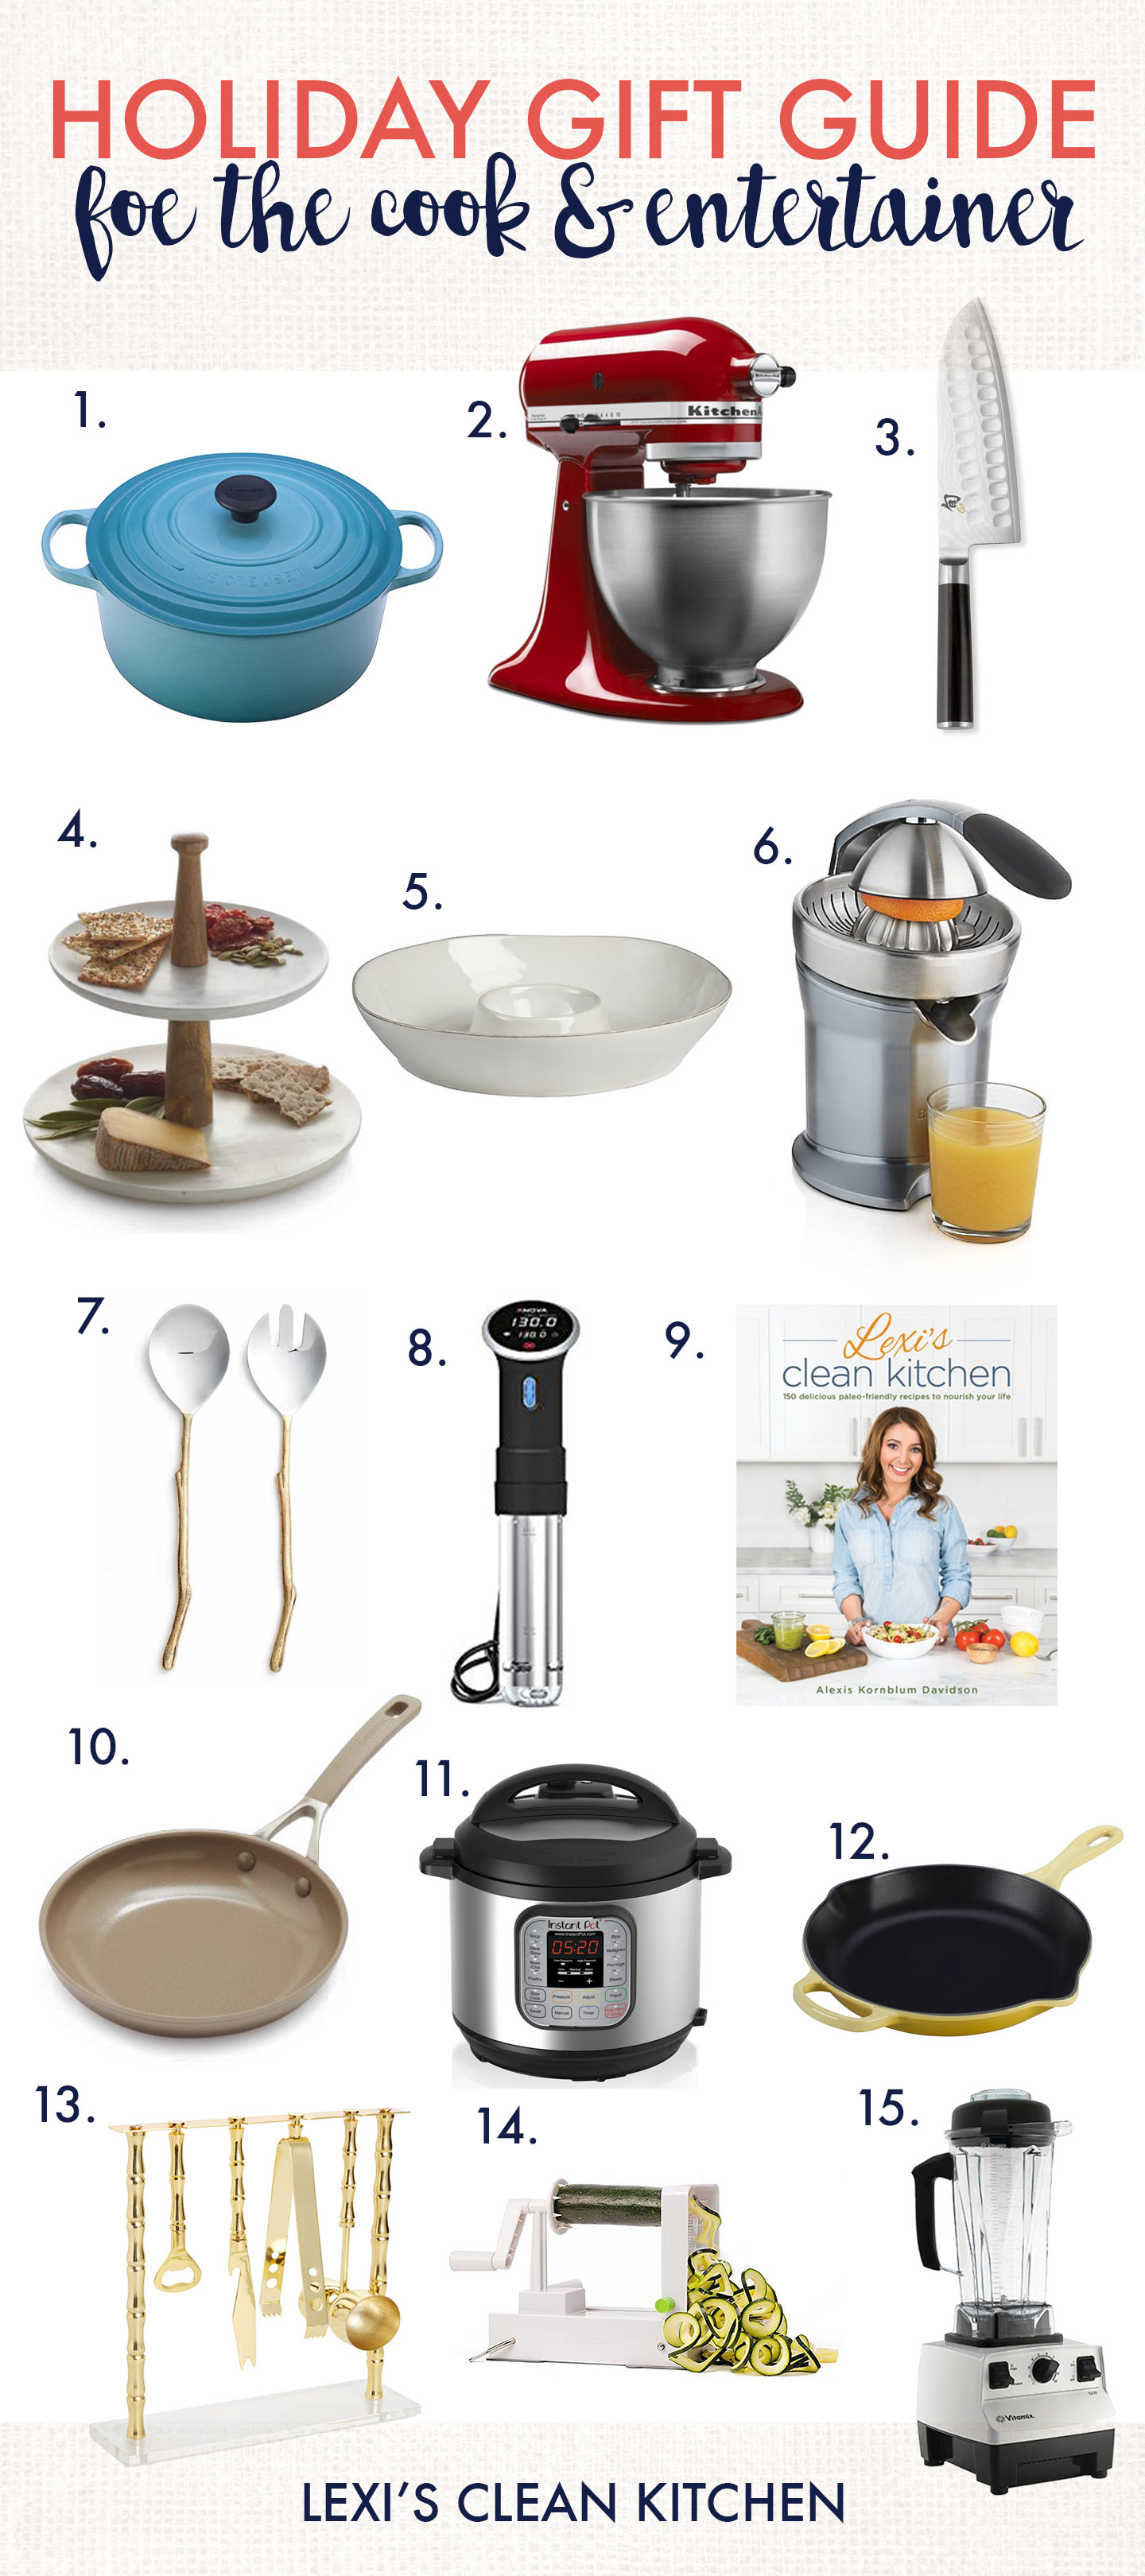 Holiday Gift Guide For The Cook & Entertainer 2017 - Lexi's Clean Kitchen